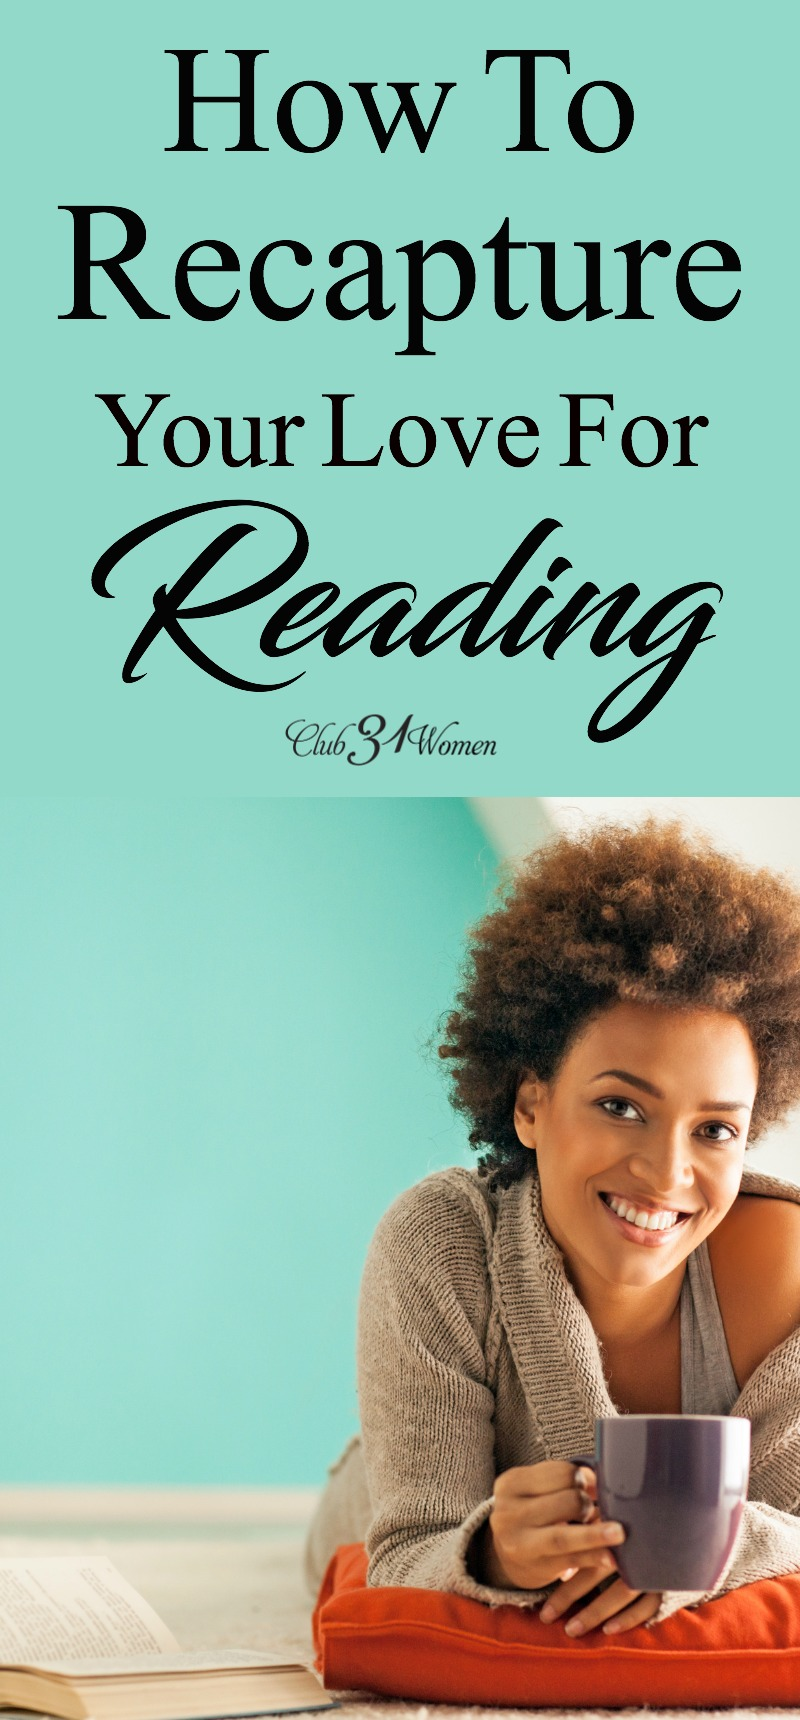 Reading can be difficult to come by as life continues to get busy and seasons change. But how can we keep reading a priority in our lives? via @Club31Women